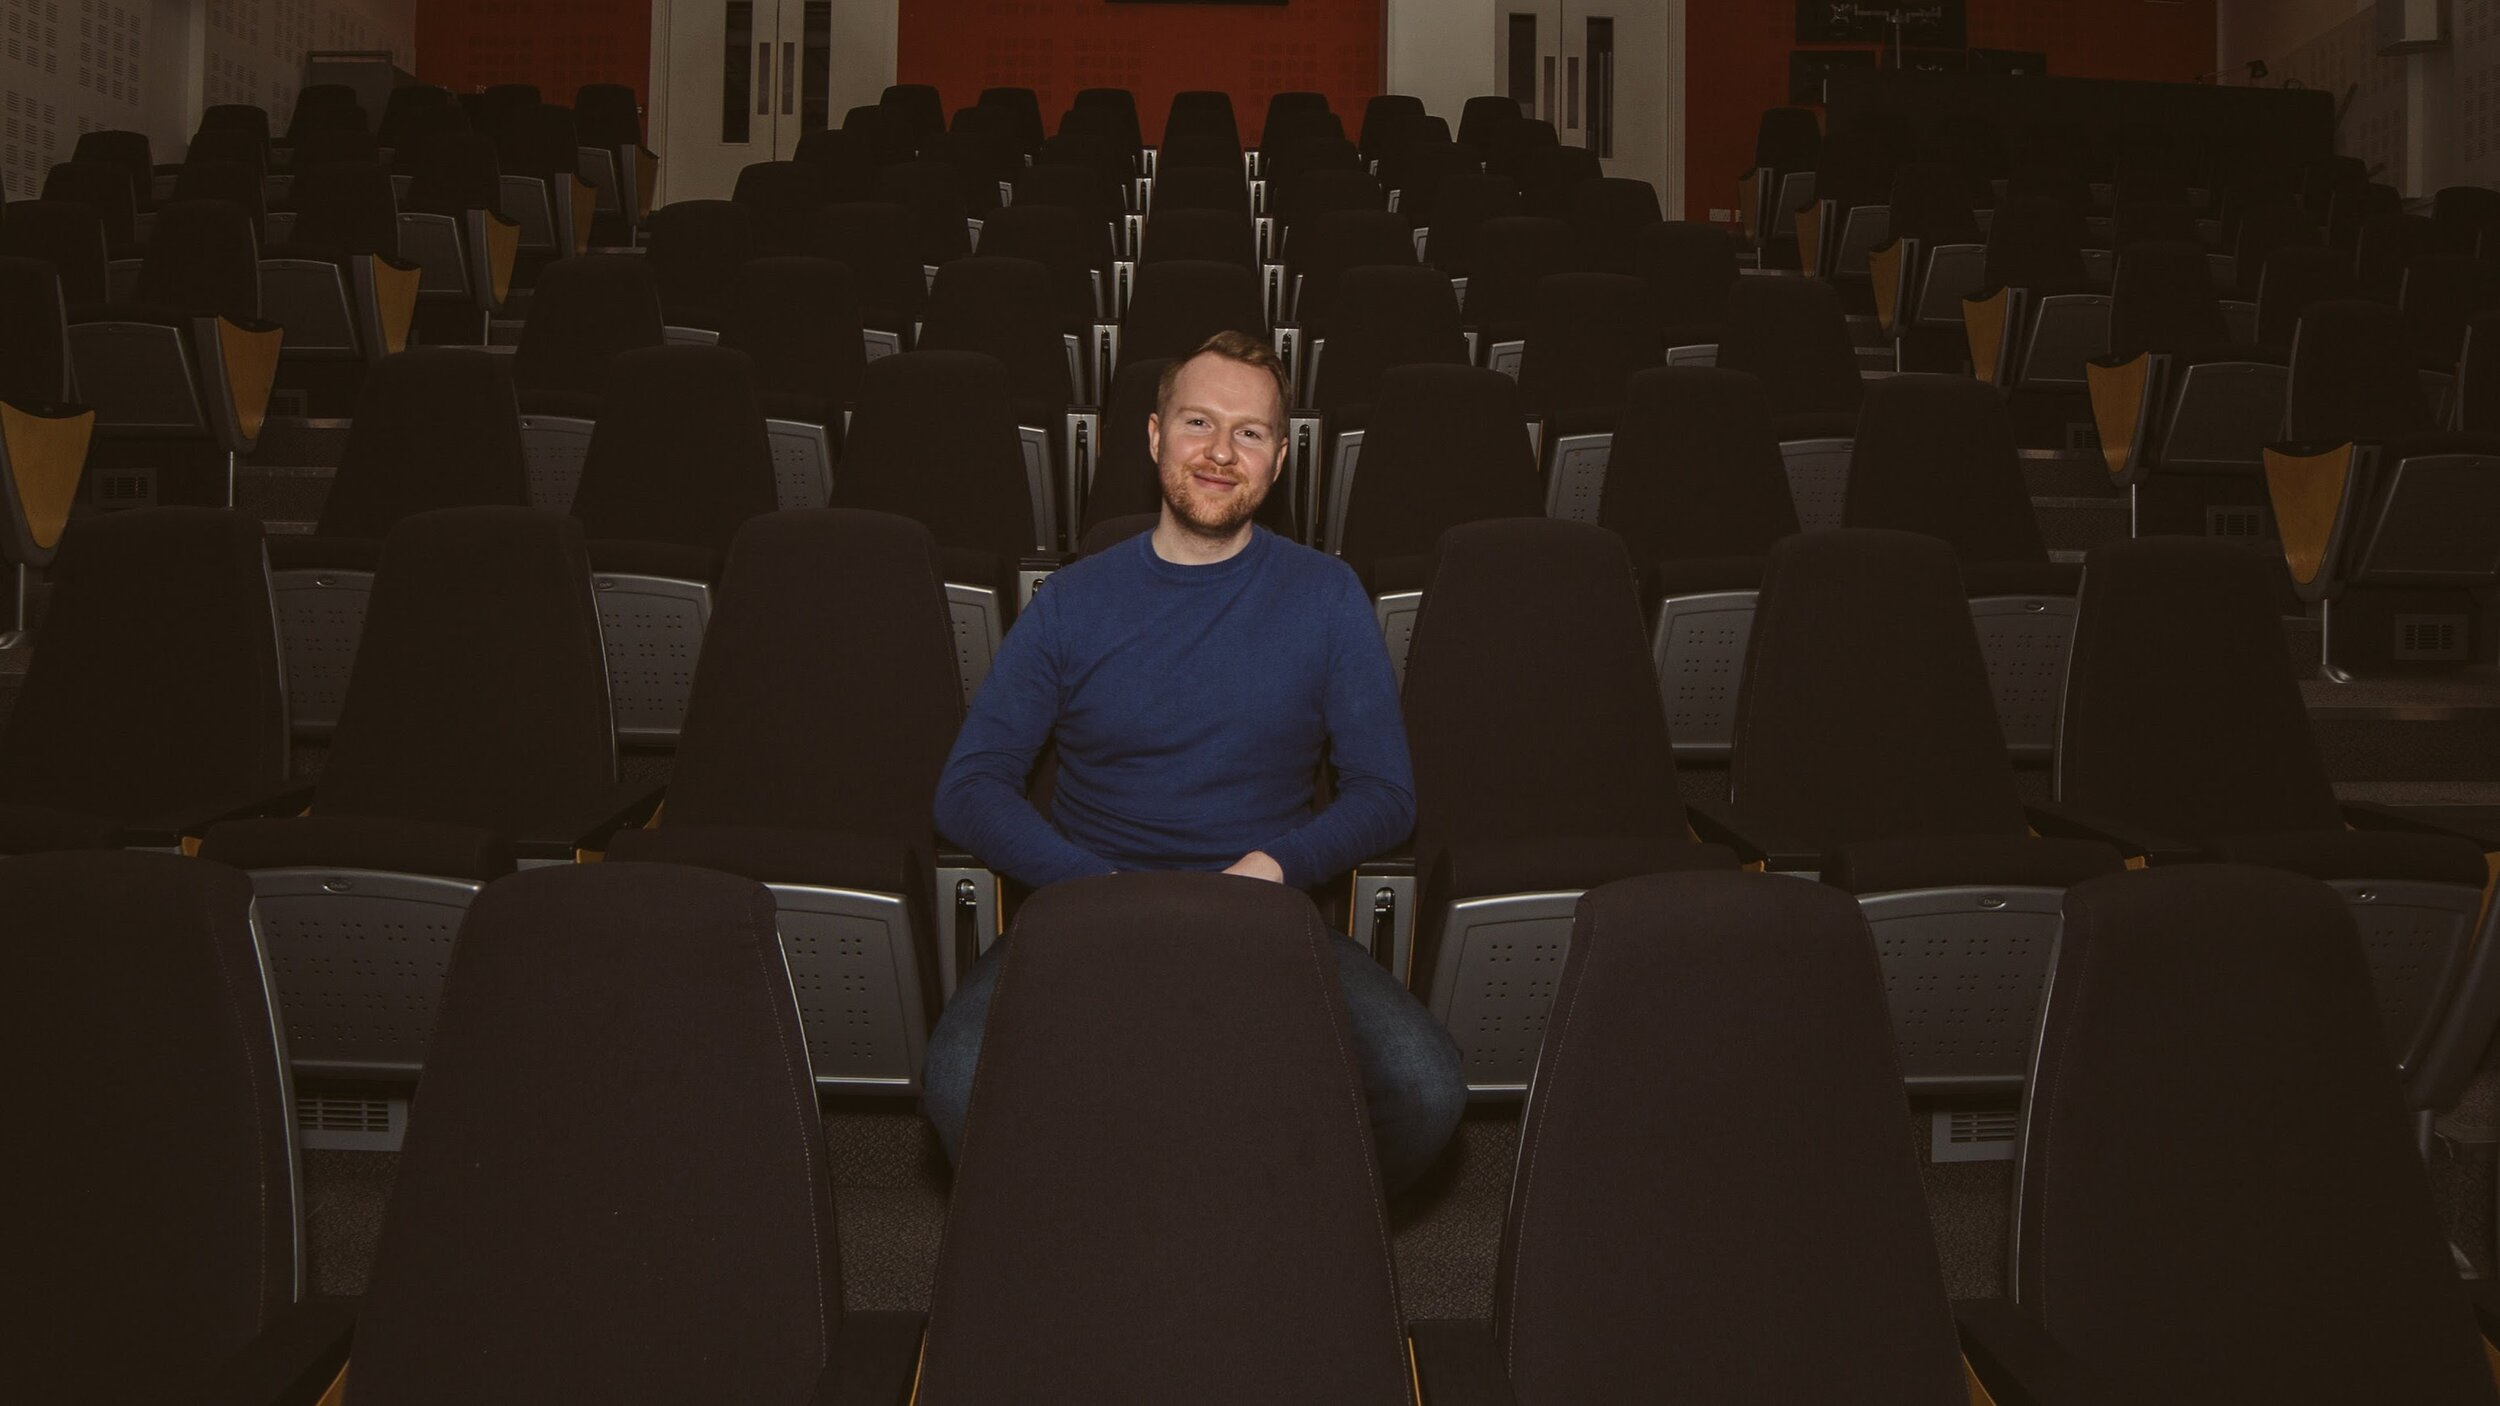 Dr Shaun O'Boyle, Science Communicator and Public Engagement Consultant